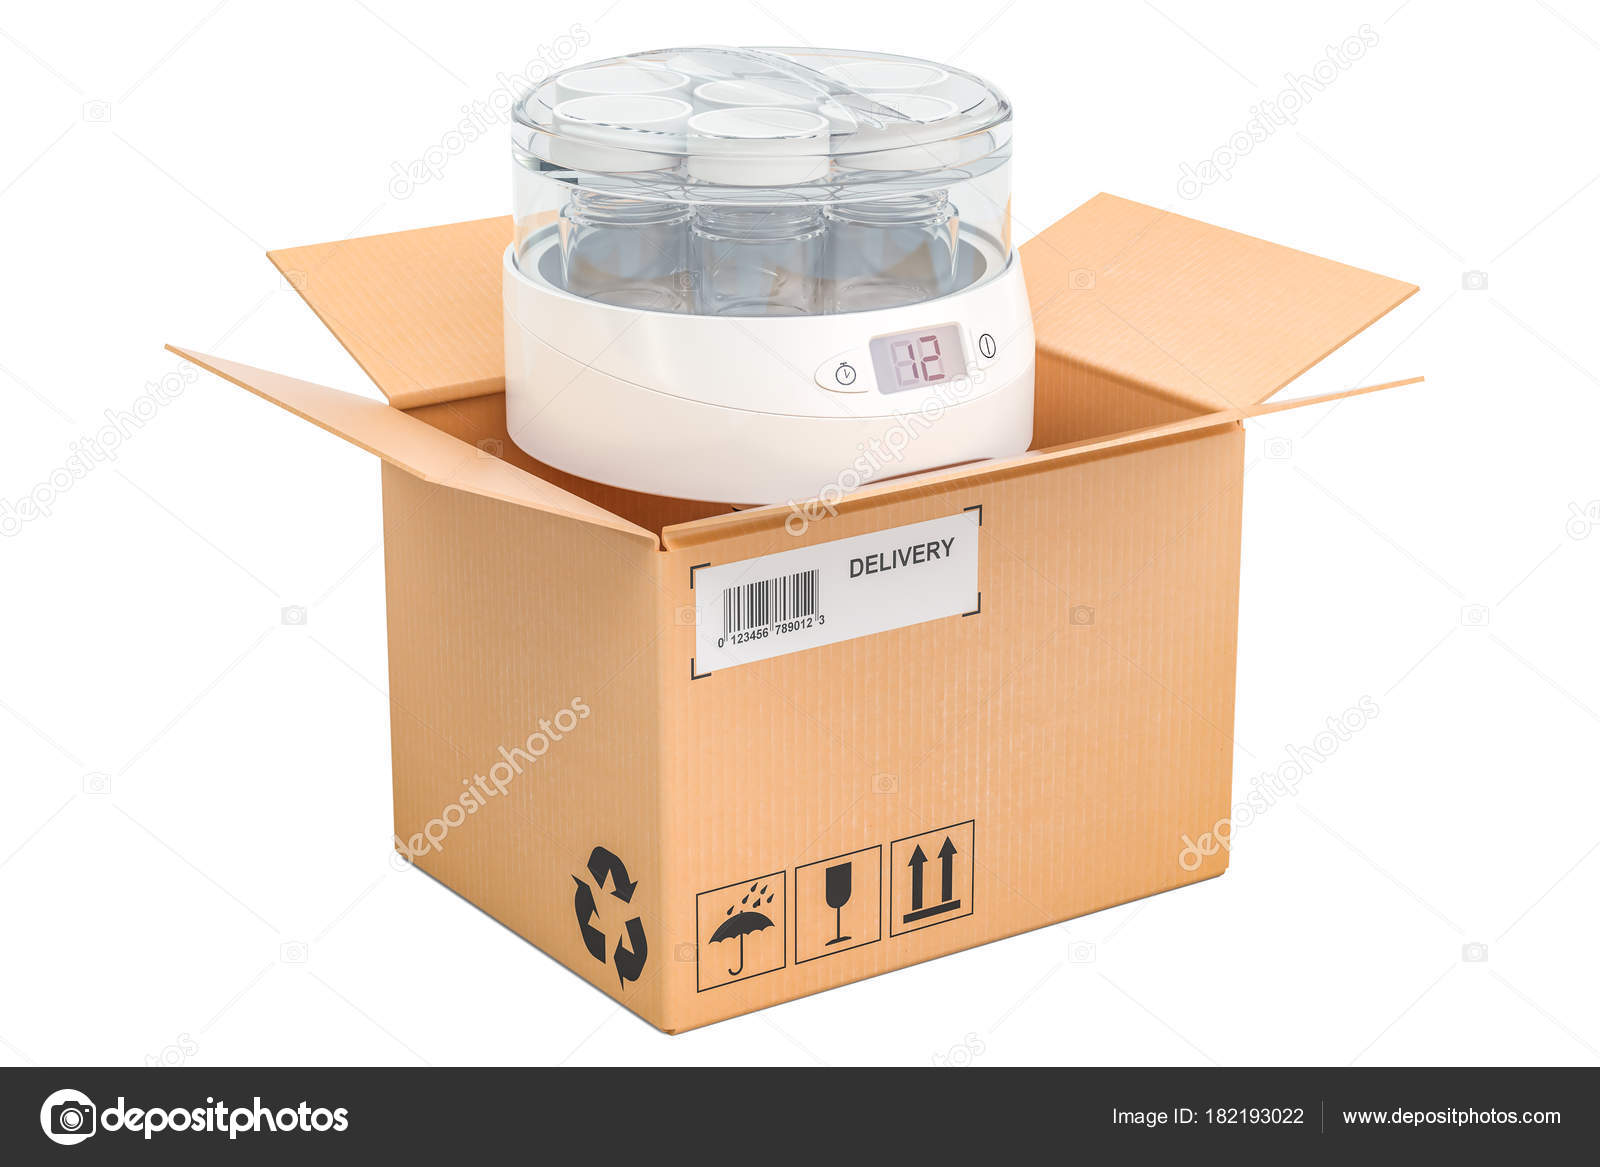 automatic yogurt maker inside cardboard box delivery concept 3